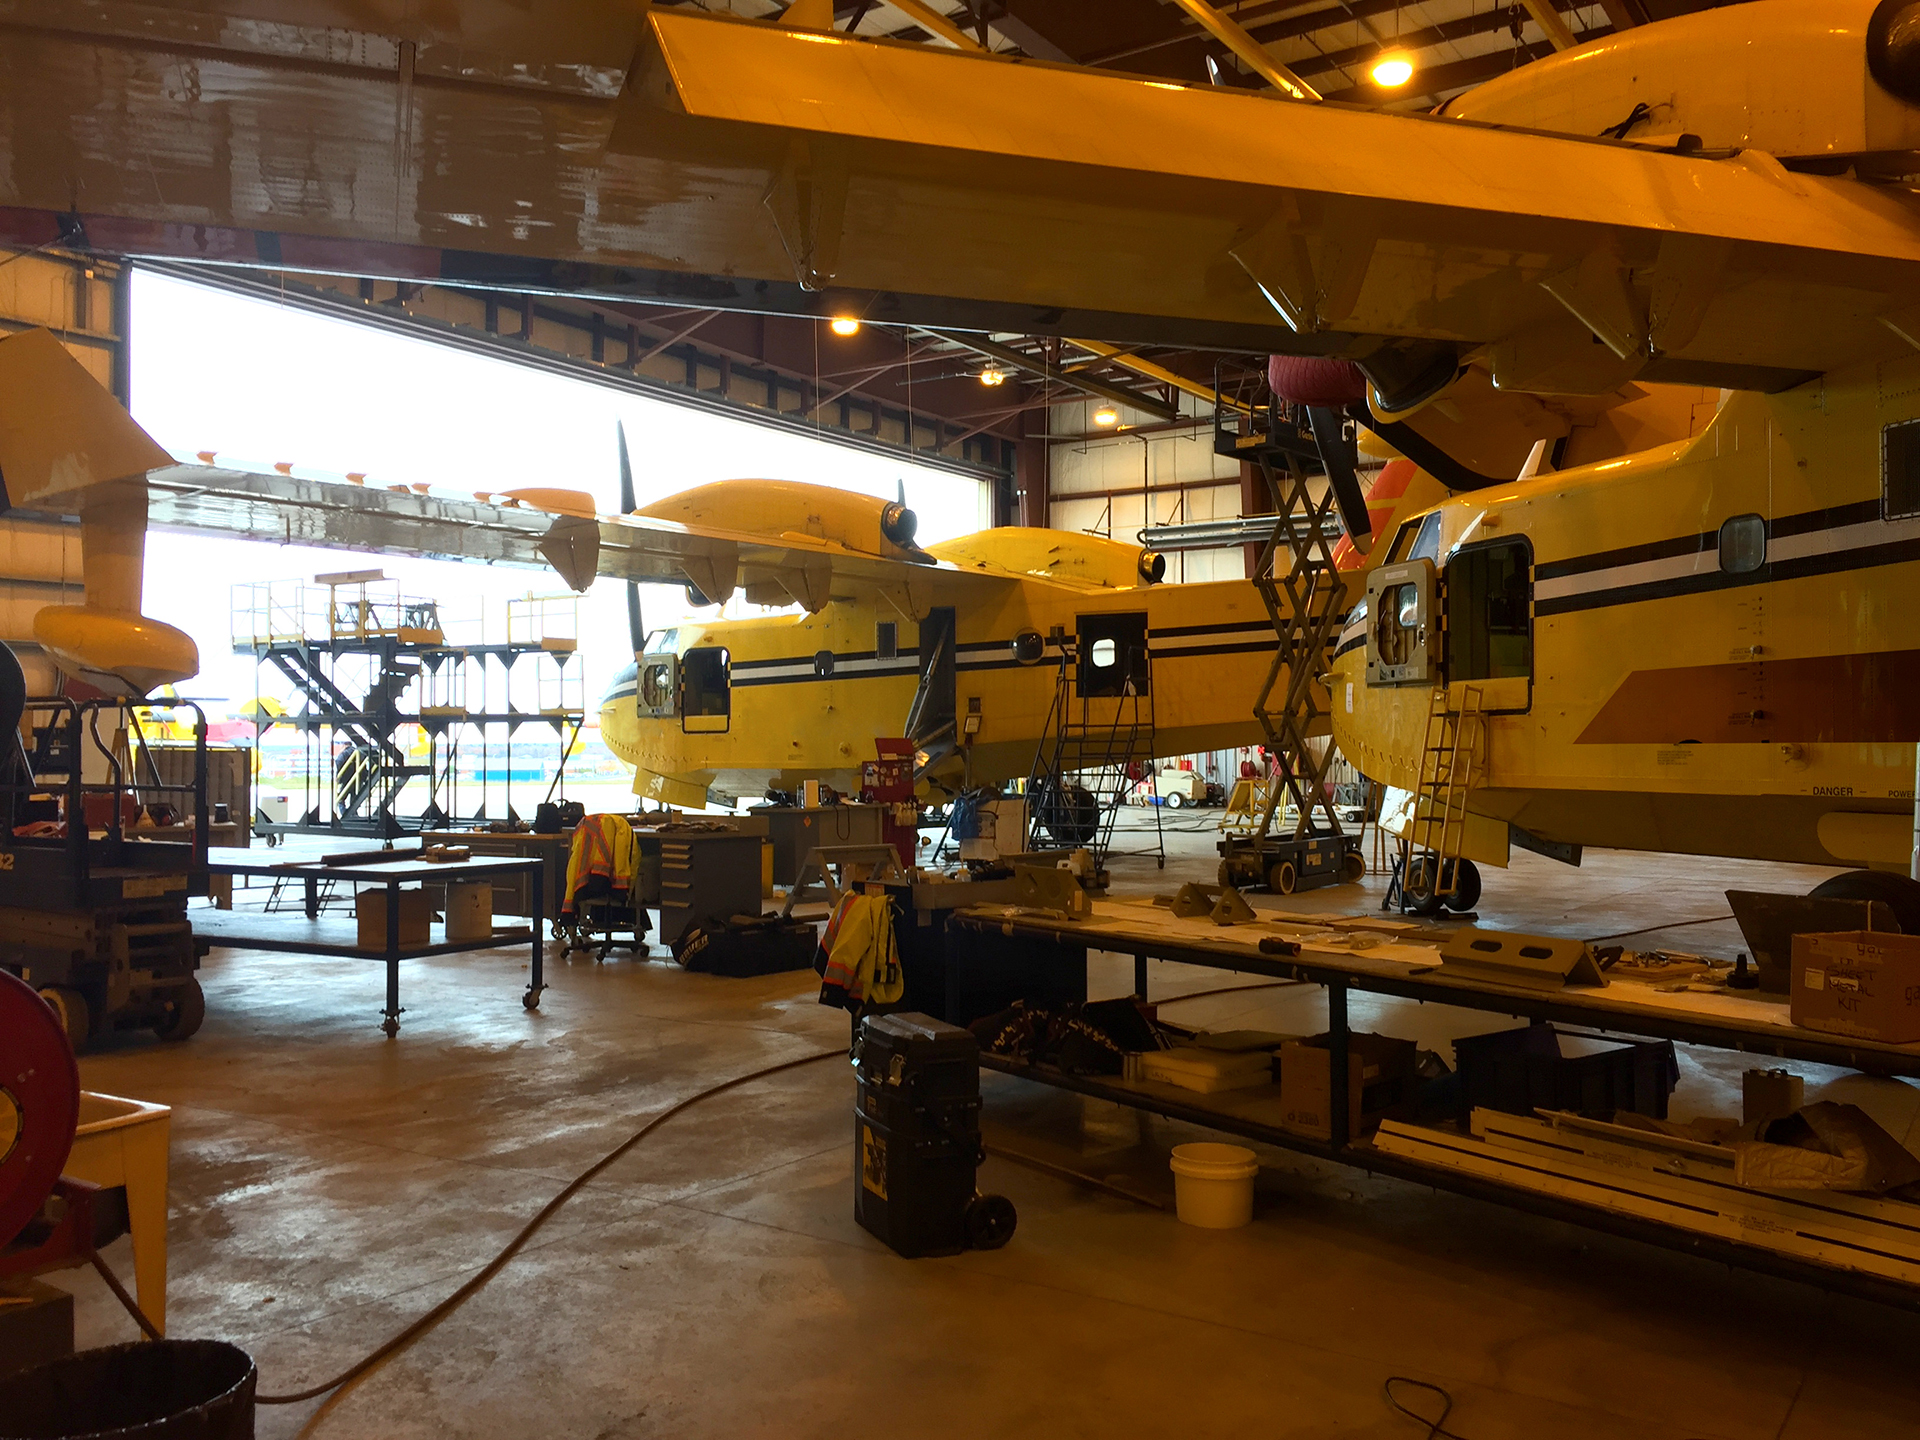 CL-415 aircraft undergoing maintenance in hangar